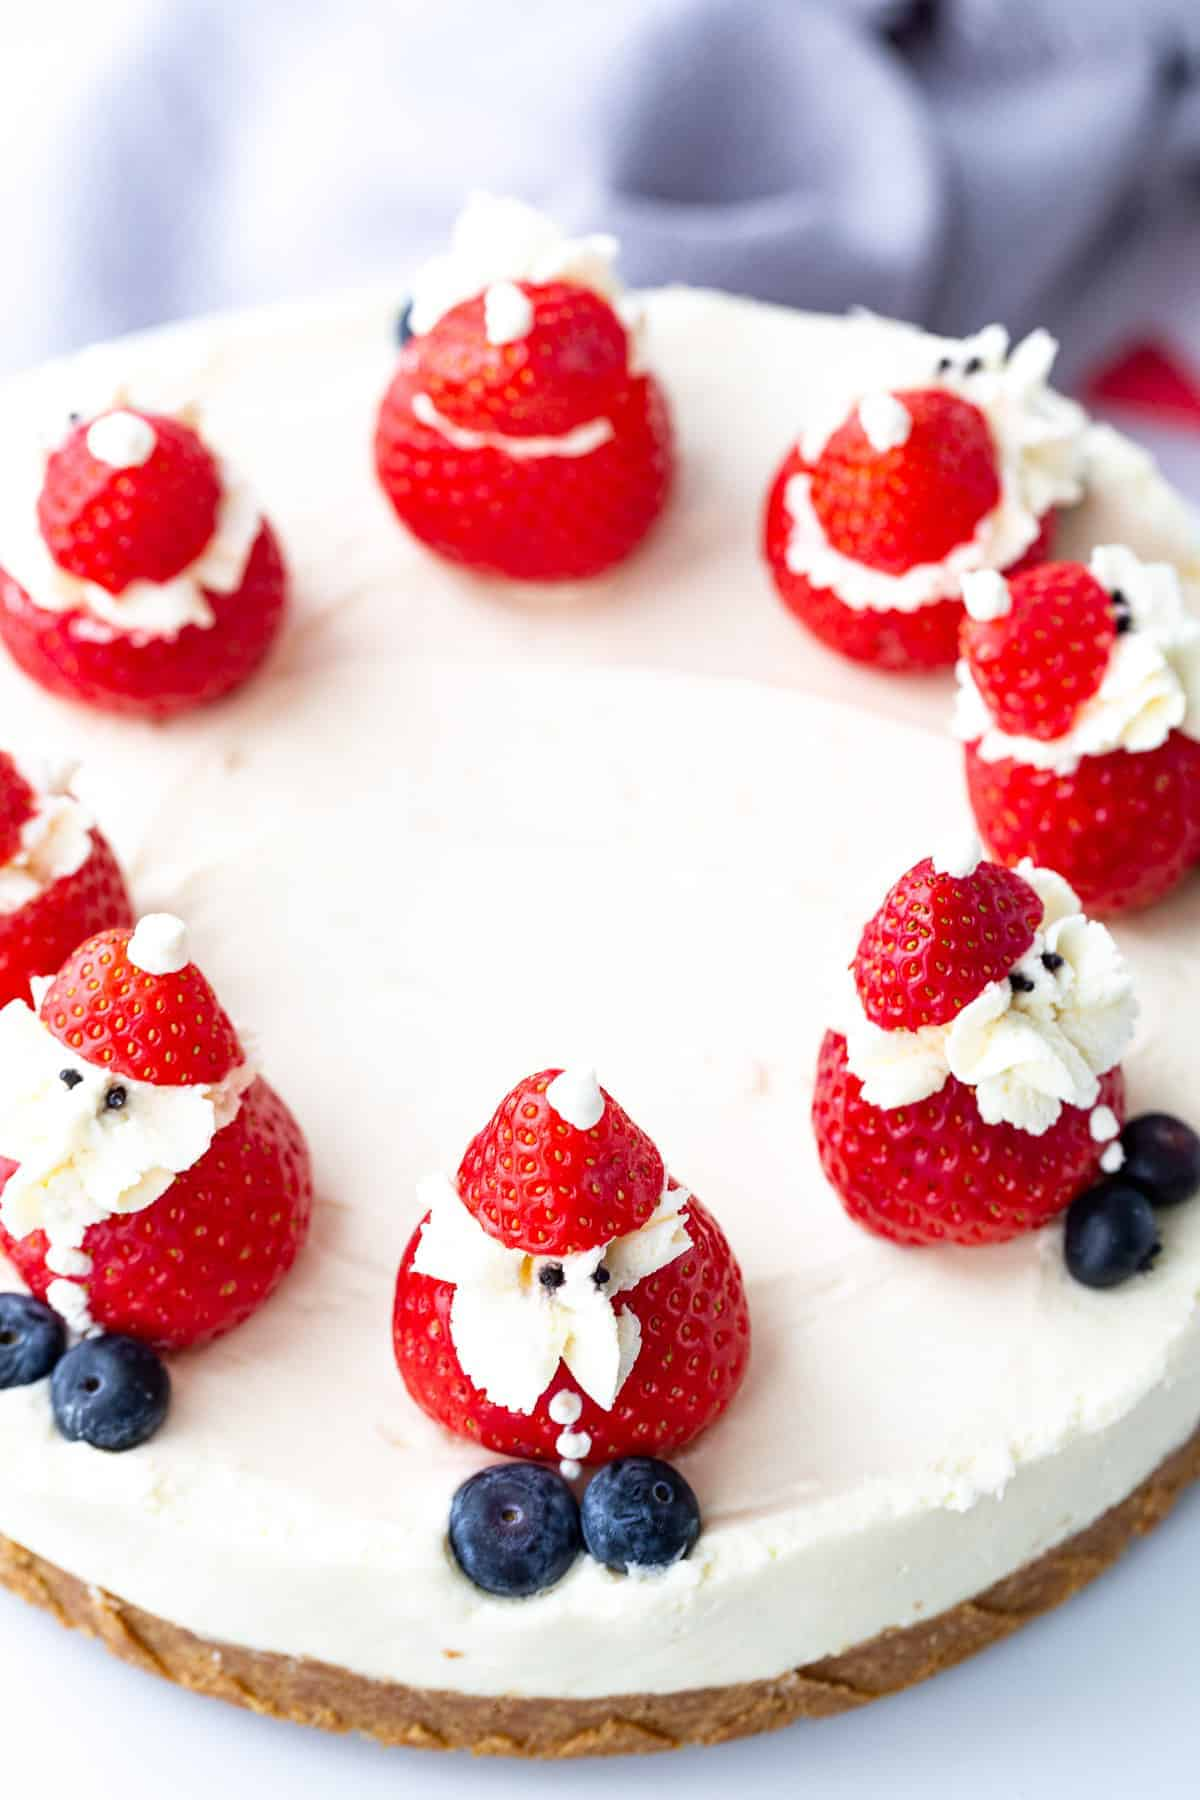 A no-bake white chocolate cheesecake with stuffed strawberry santas.